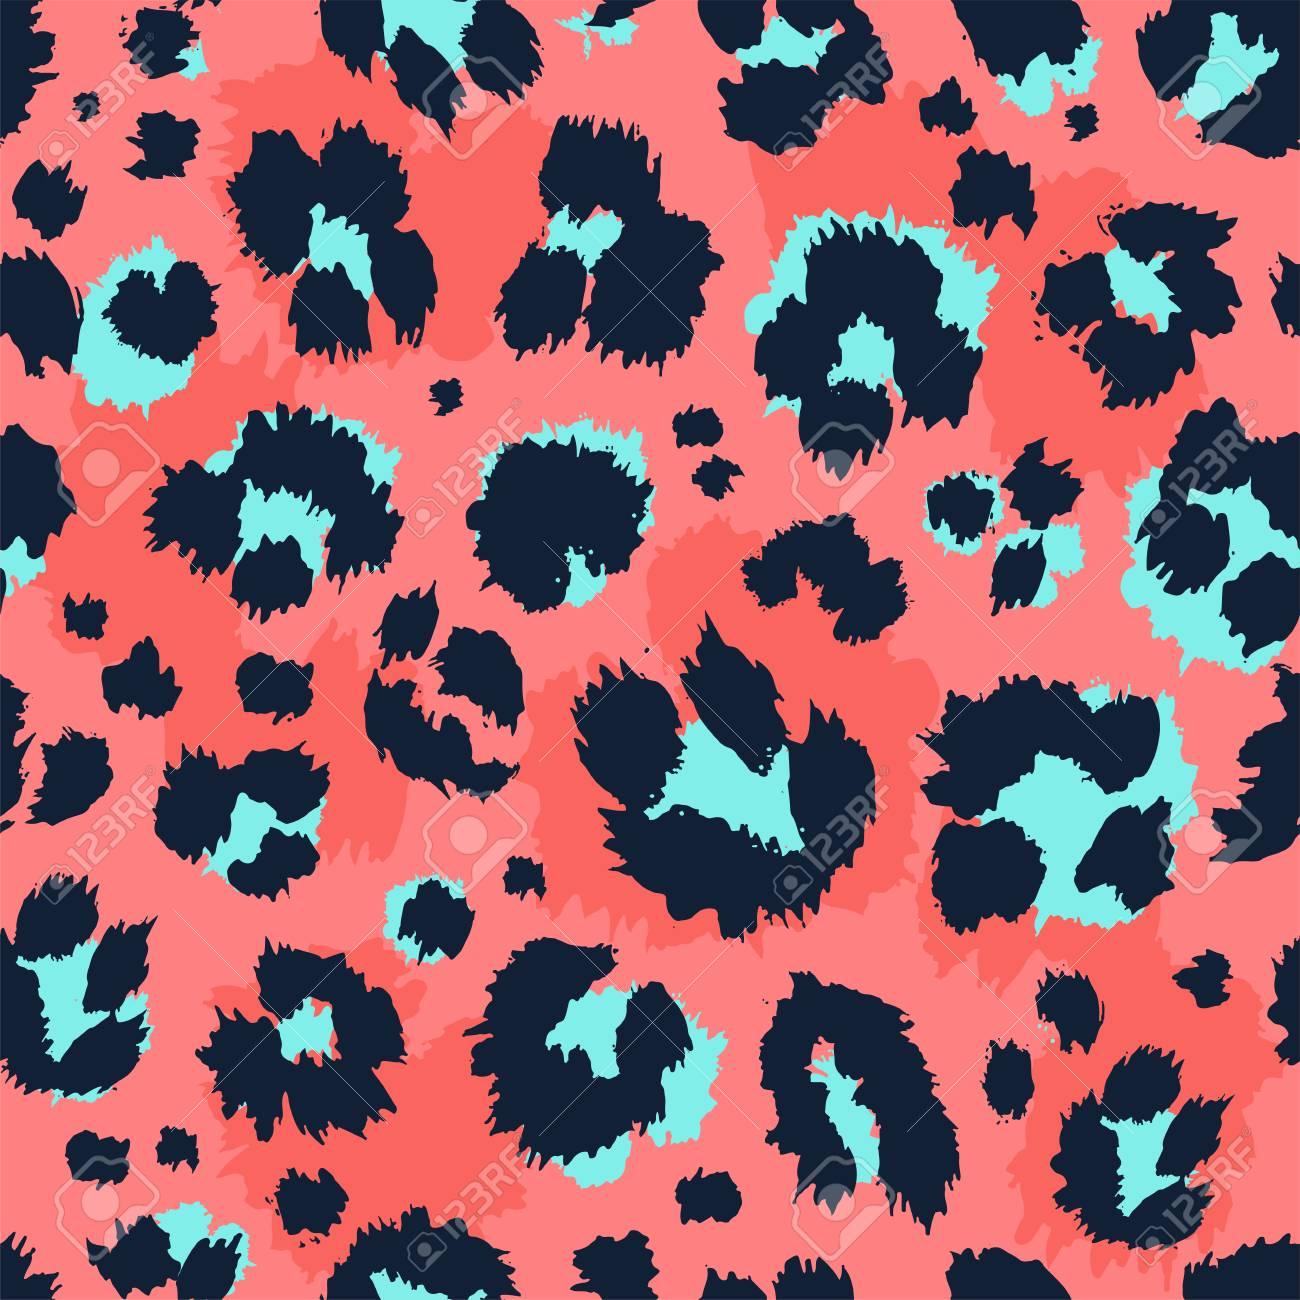 Leopard pattern design funny drawing seamless pattern. Lettering poster or t-shirt textile graphic design wallpaper wrapping paper. - 127618664